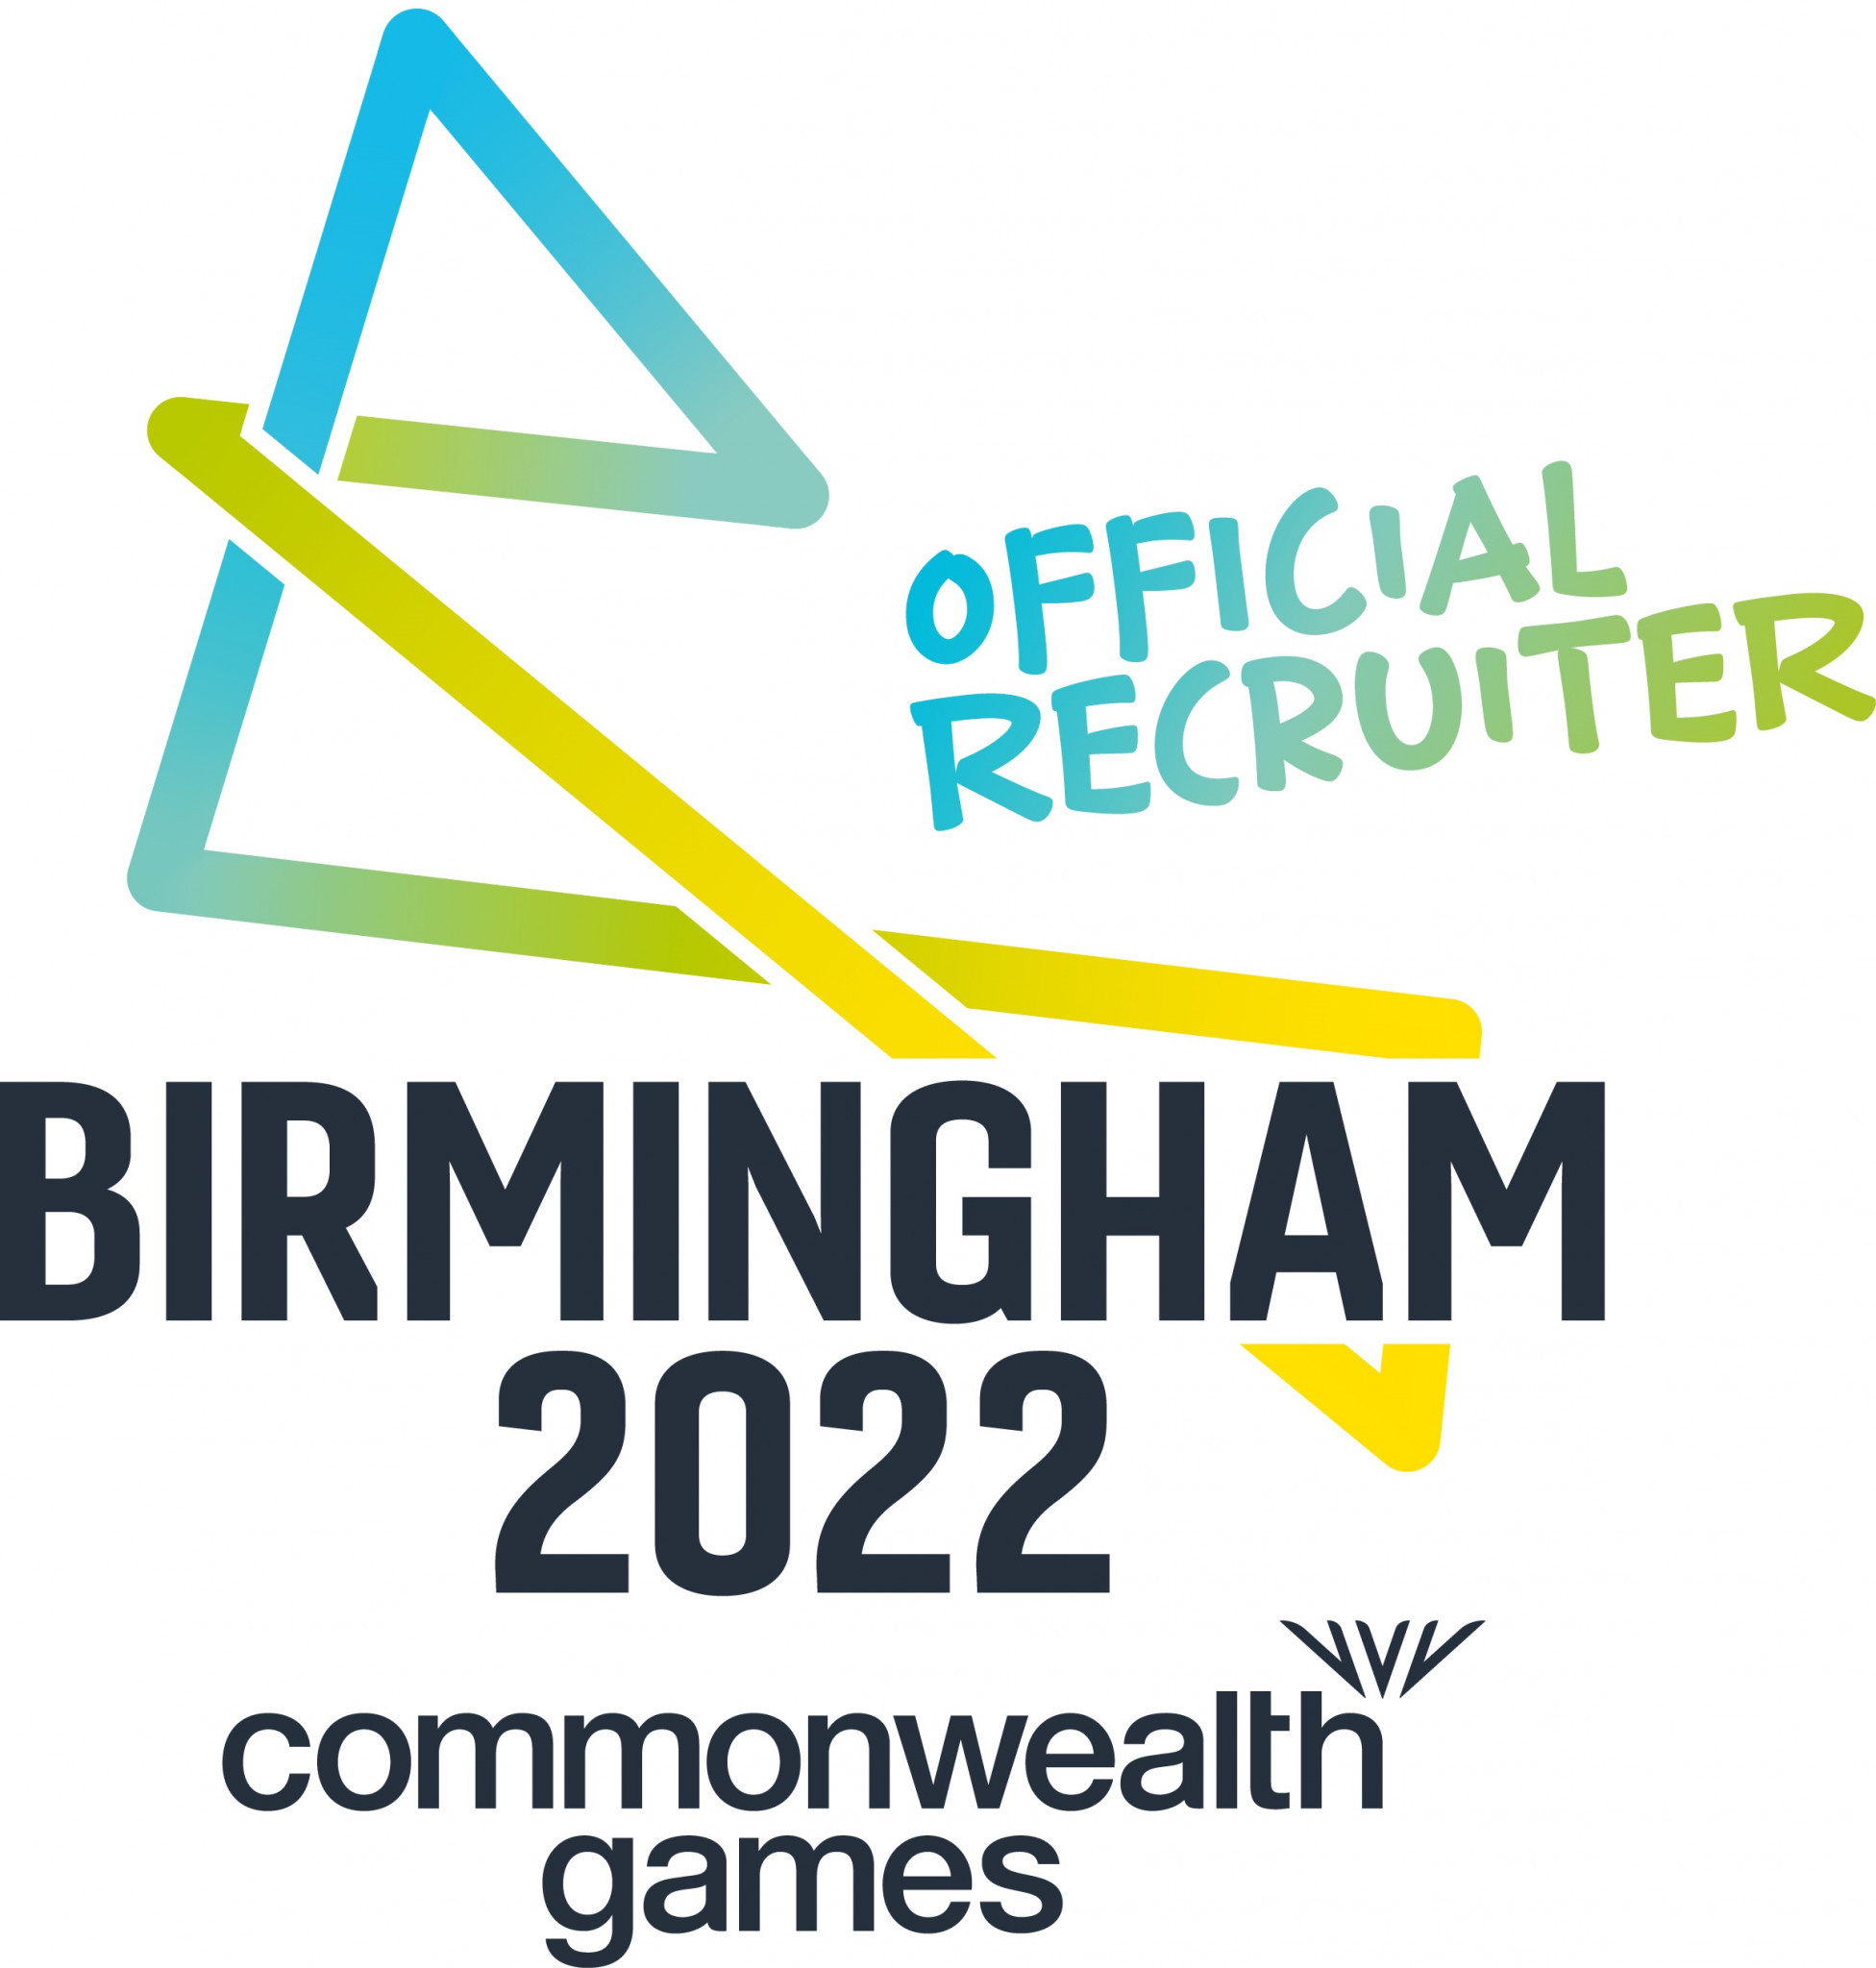 A Commonwealth Jobs and Skills Academy has been launched ahead of the Birmingham 2022 Commonwealth Games ©Birmingham 2022